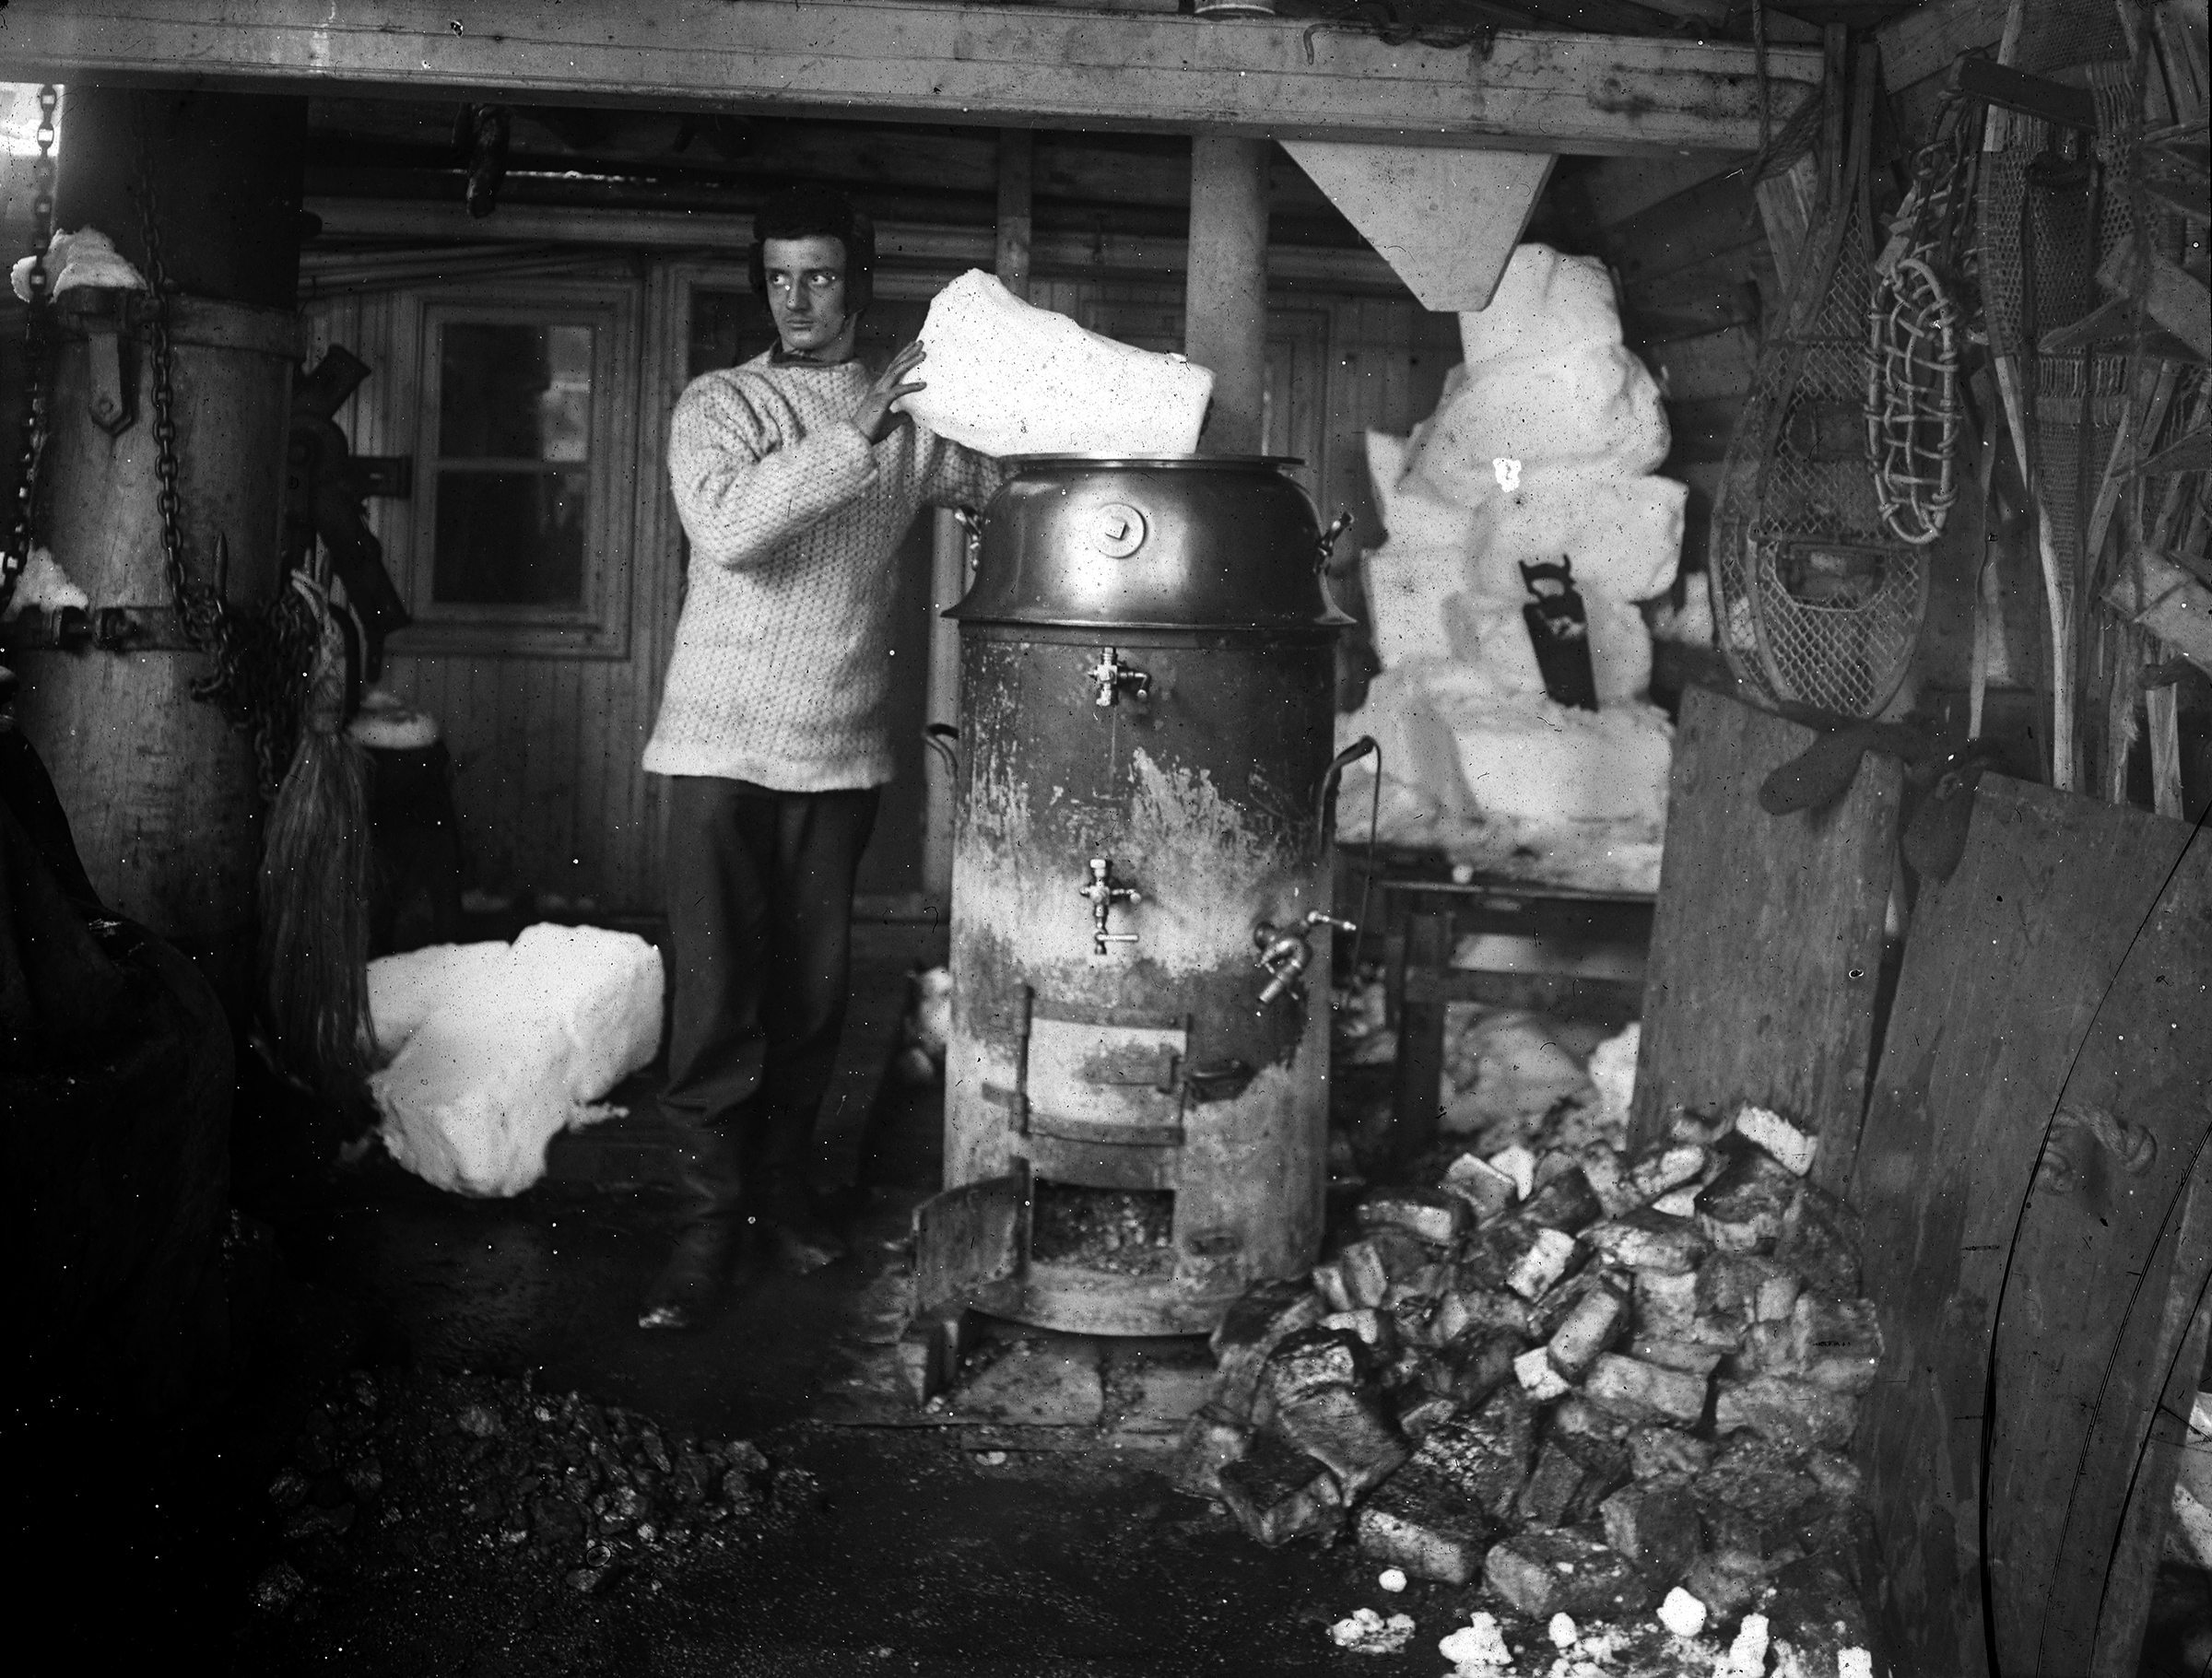 The Belgica's second engineer, Max van Rysselberghe, melts snow on the Belgica's stove.